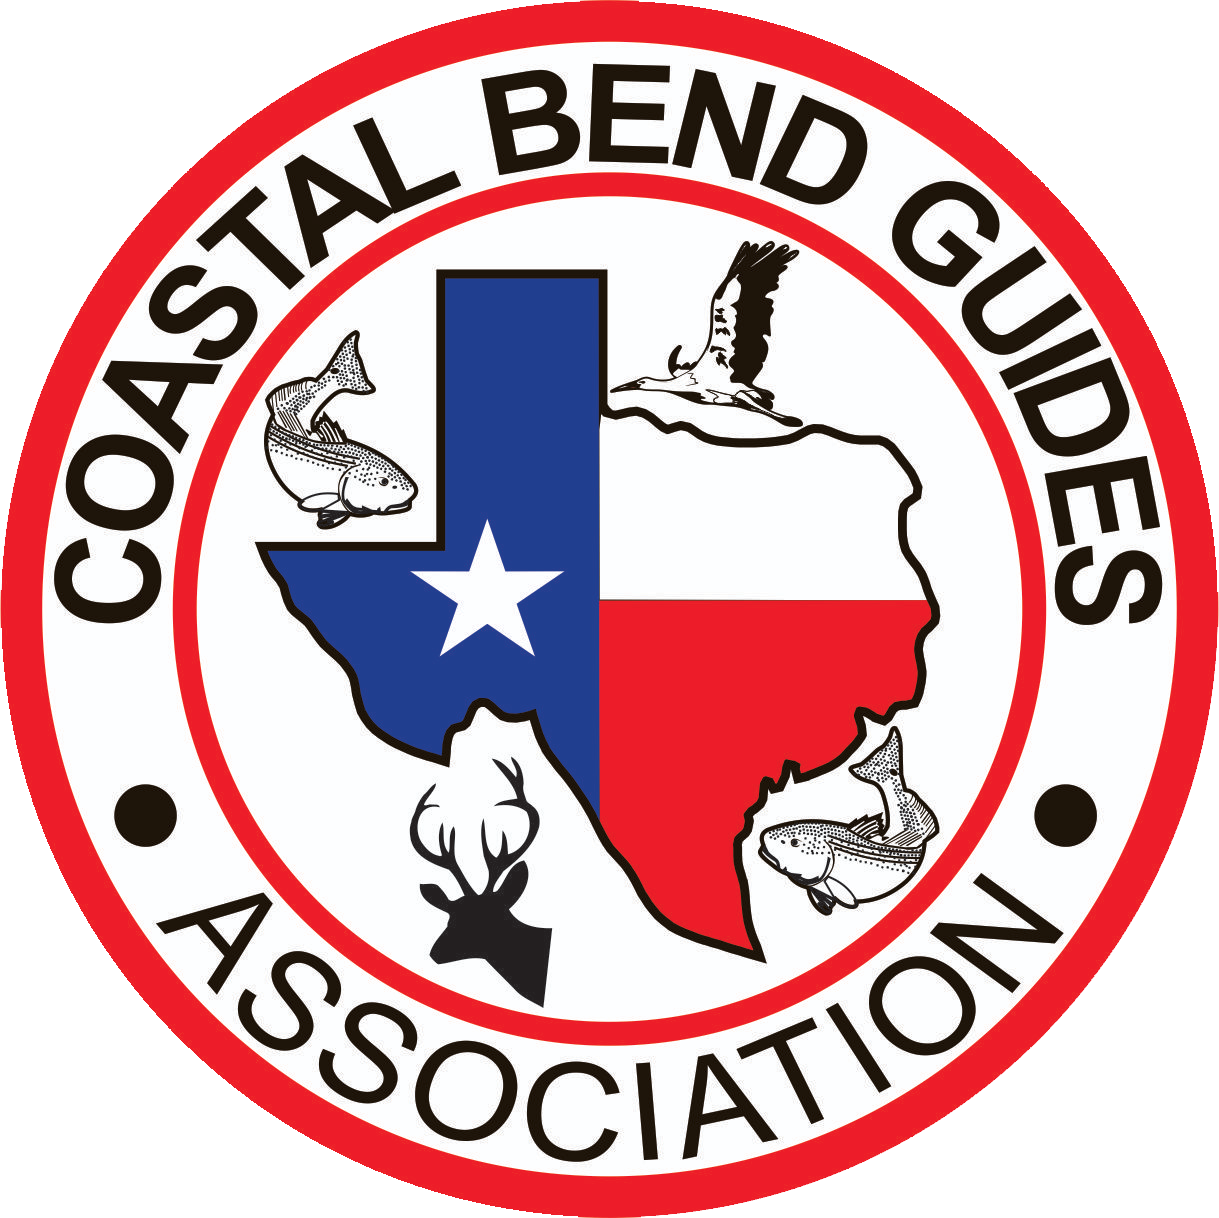 Coastal Bend Guides Association